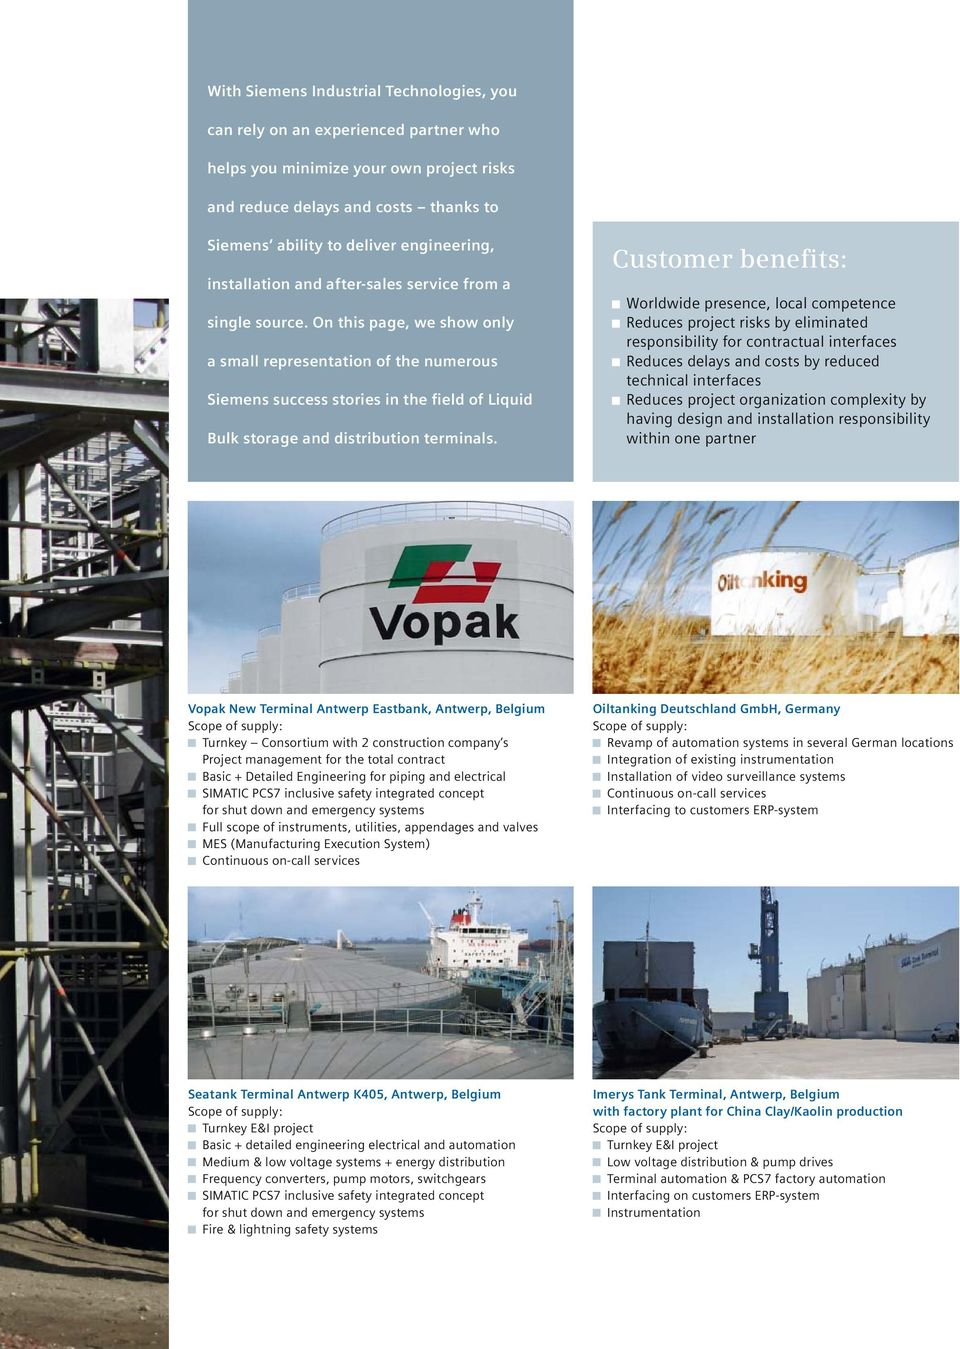 On this page, we show only a small representation of the numerous Siemens success stories in the field of Liquid Bulk storage and distribution terminals.